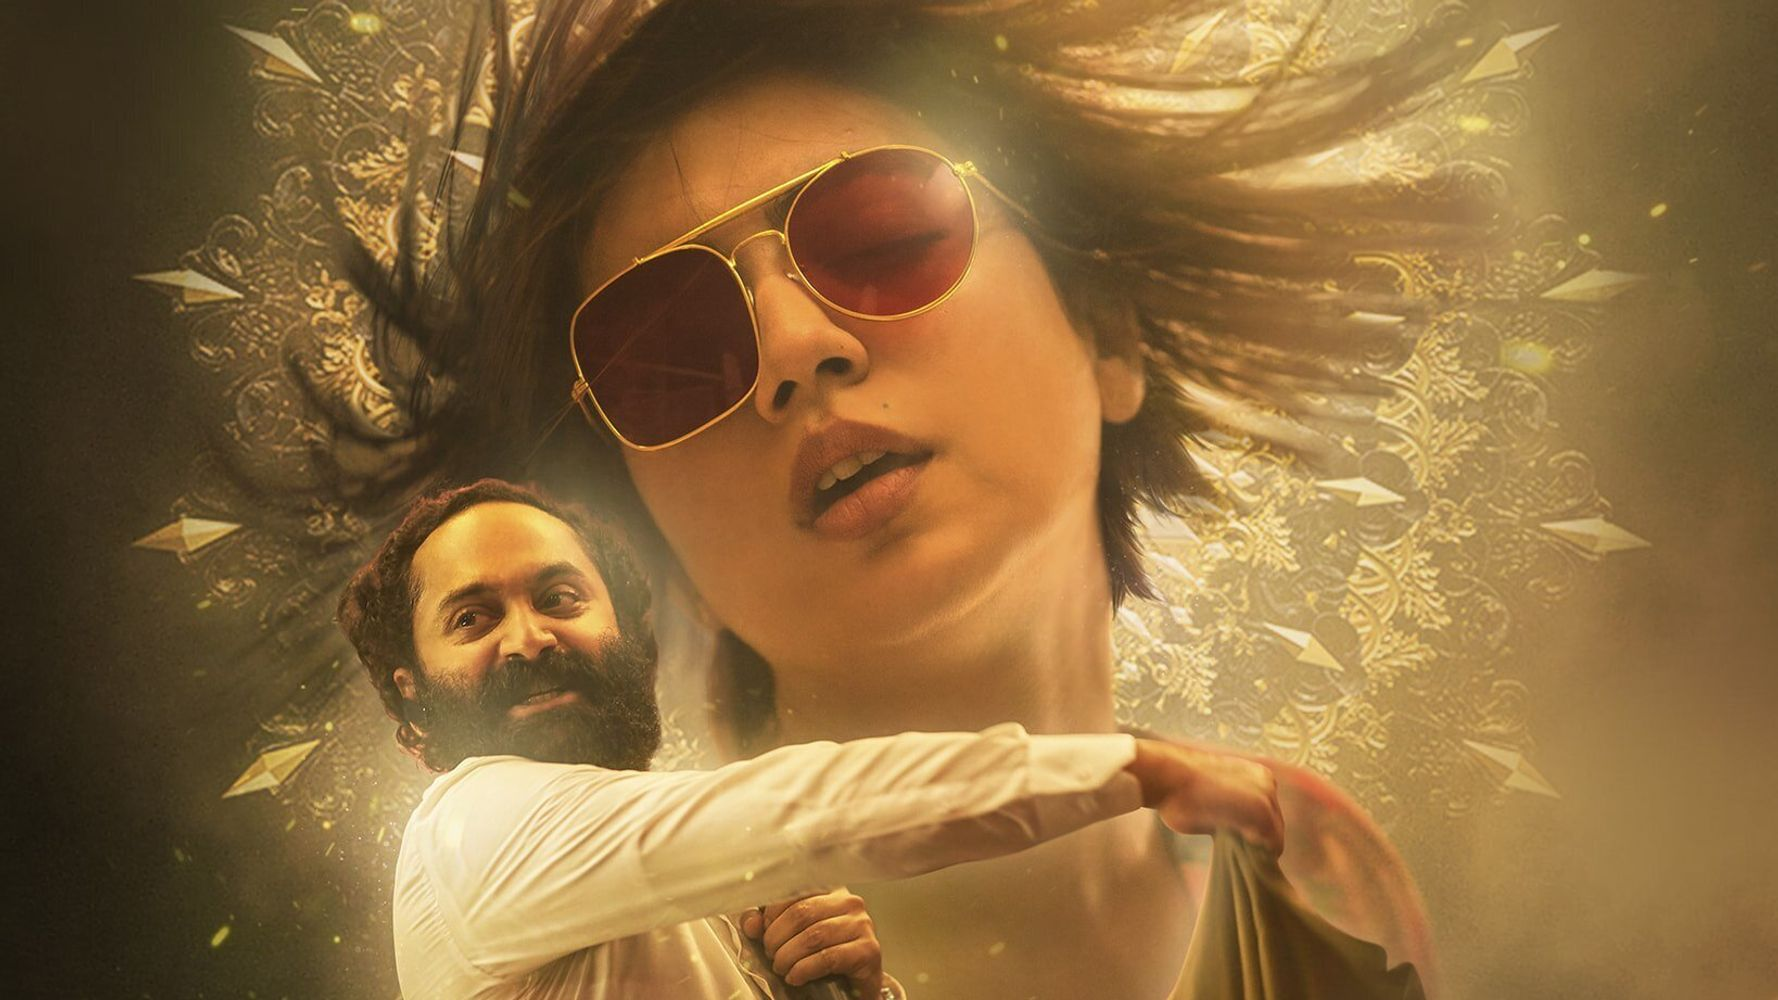 Trance Malayalam Movie Download | Download And Watch Online Orflix.in